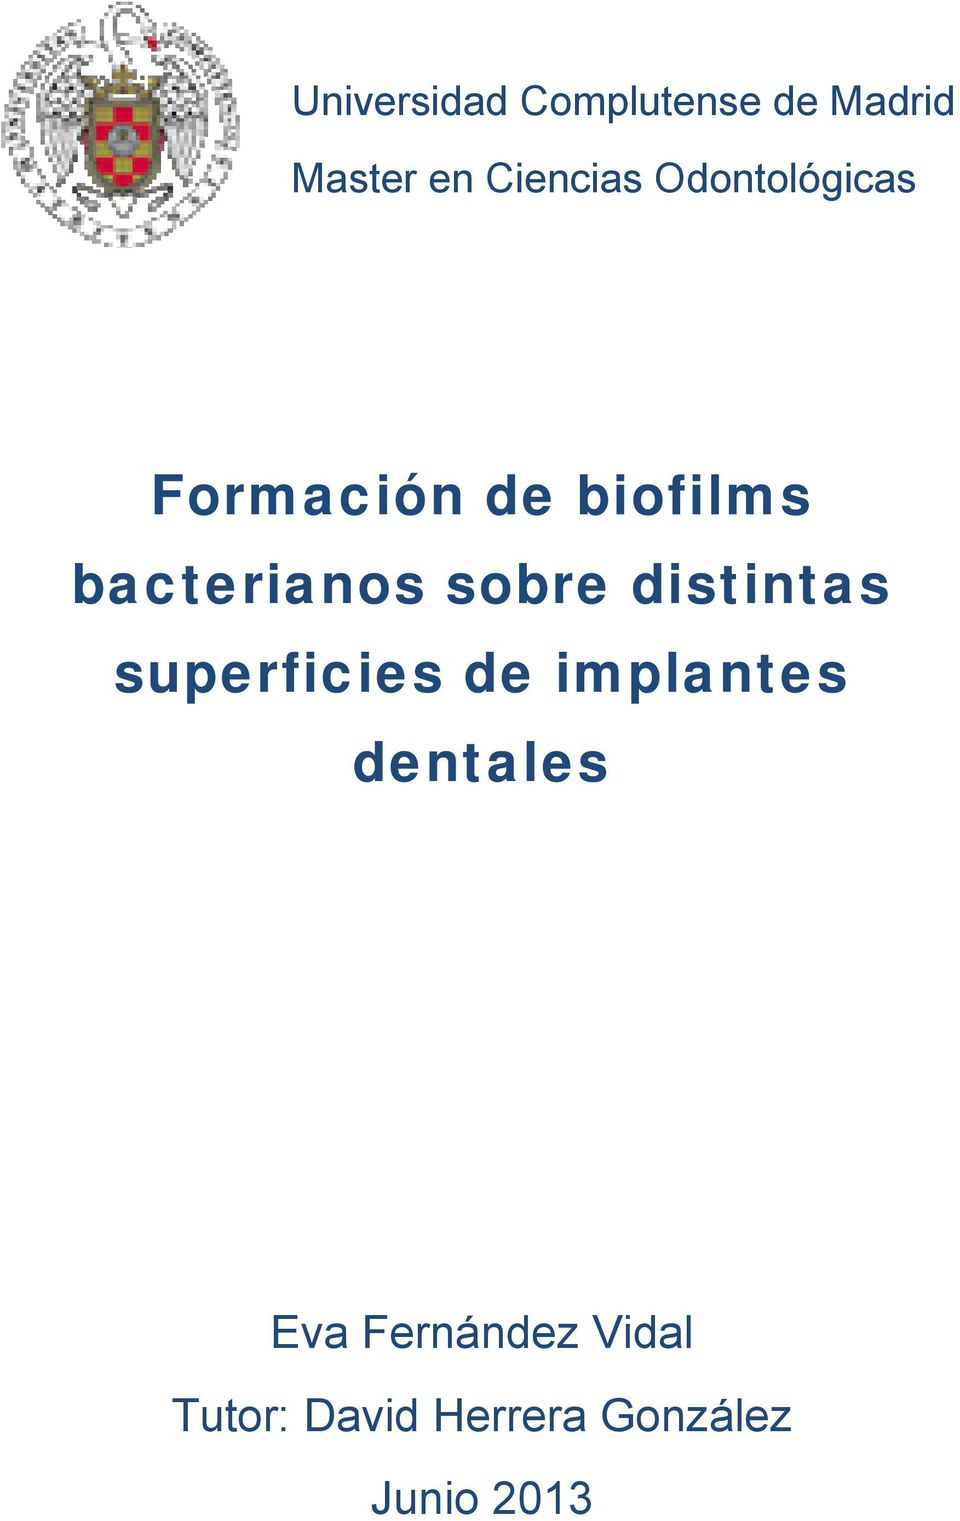 sobre distintas superficies de implantes dentales